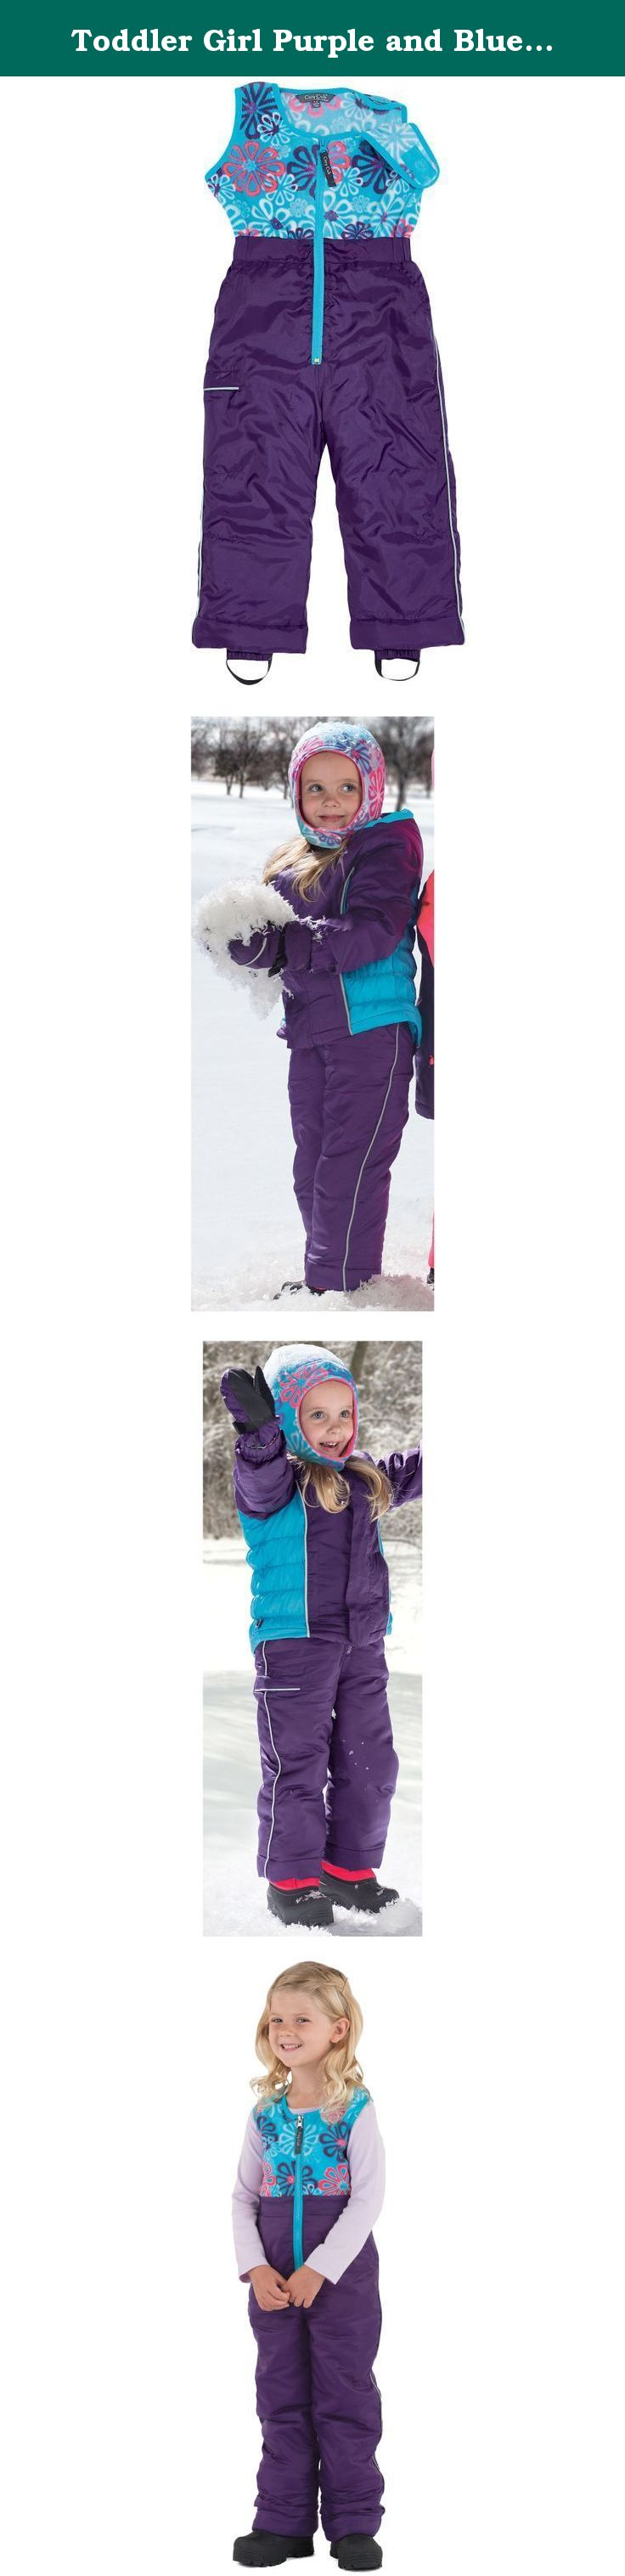 37b6908ca585 Toddler Girl Purple and Blue Waterproof Winter Snow Pants by Cozy ...